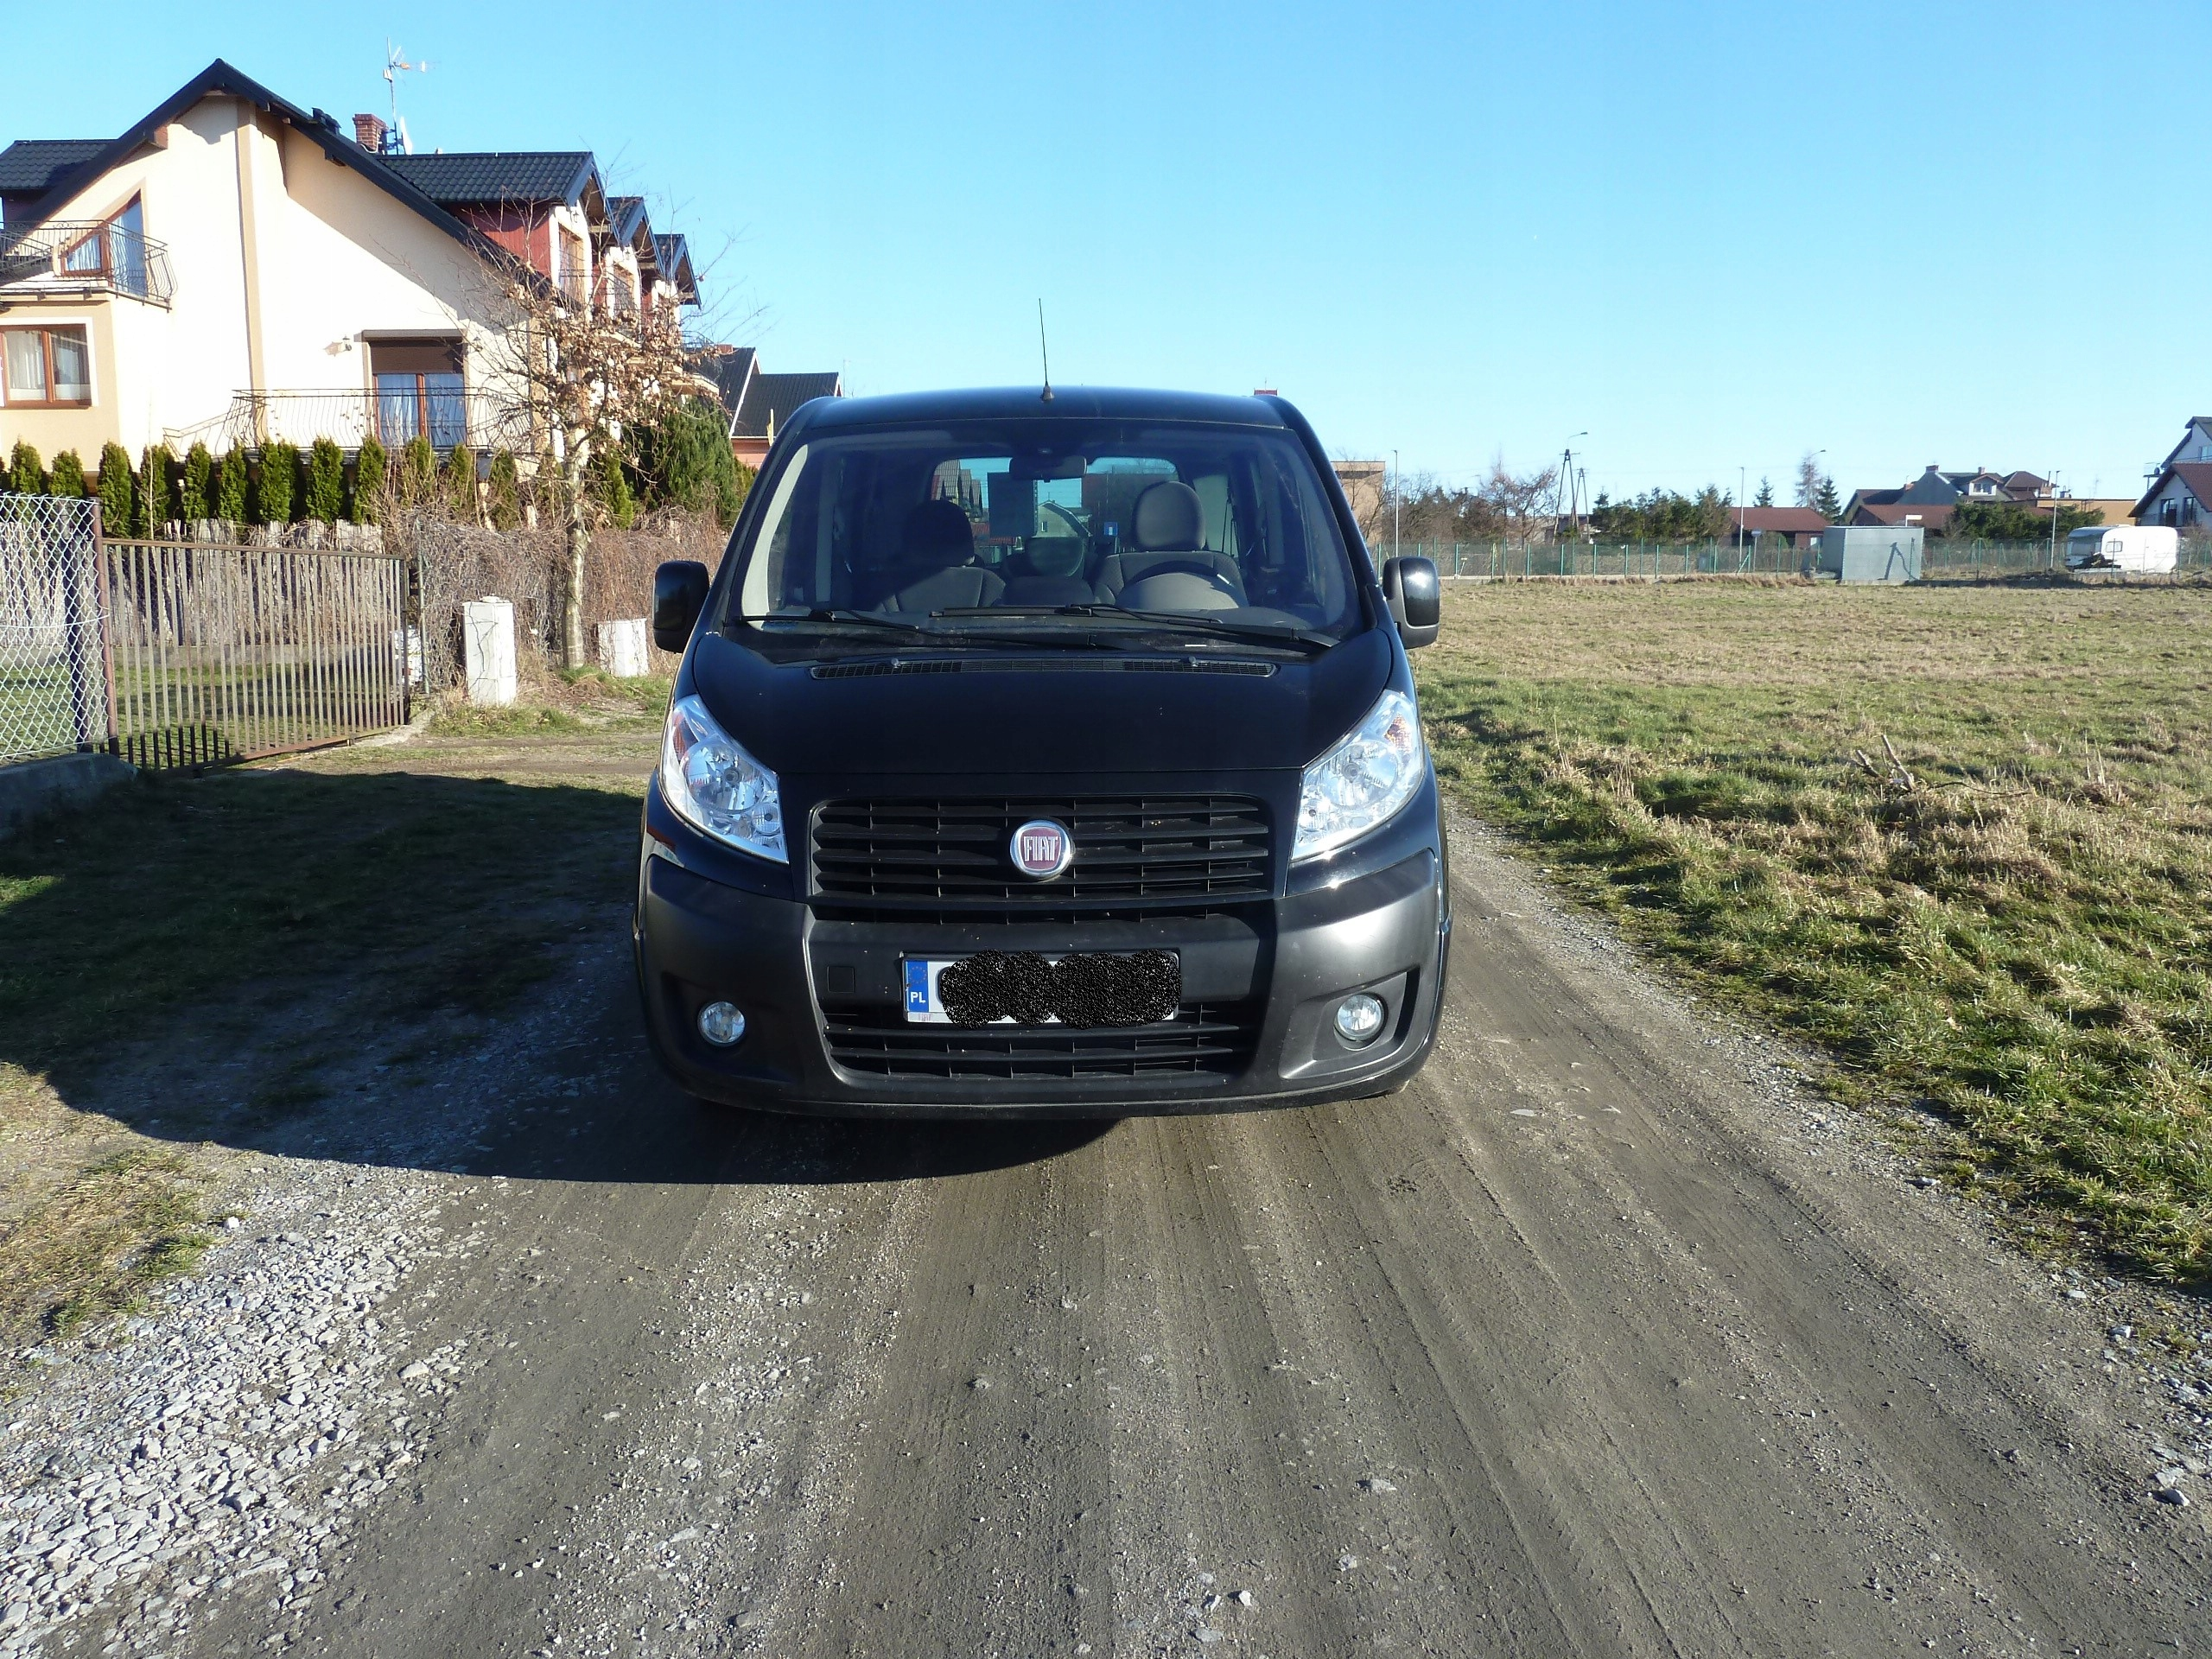 FIAT SCUDO 2.0 HDI PANORAMA 8-osobowy